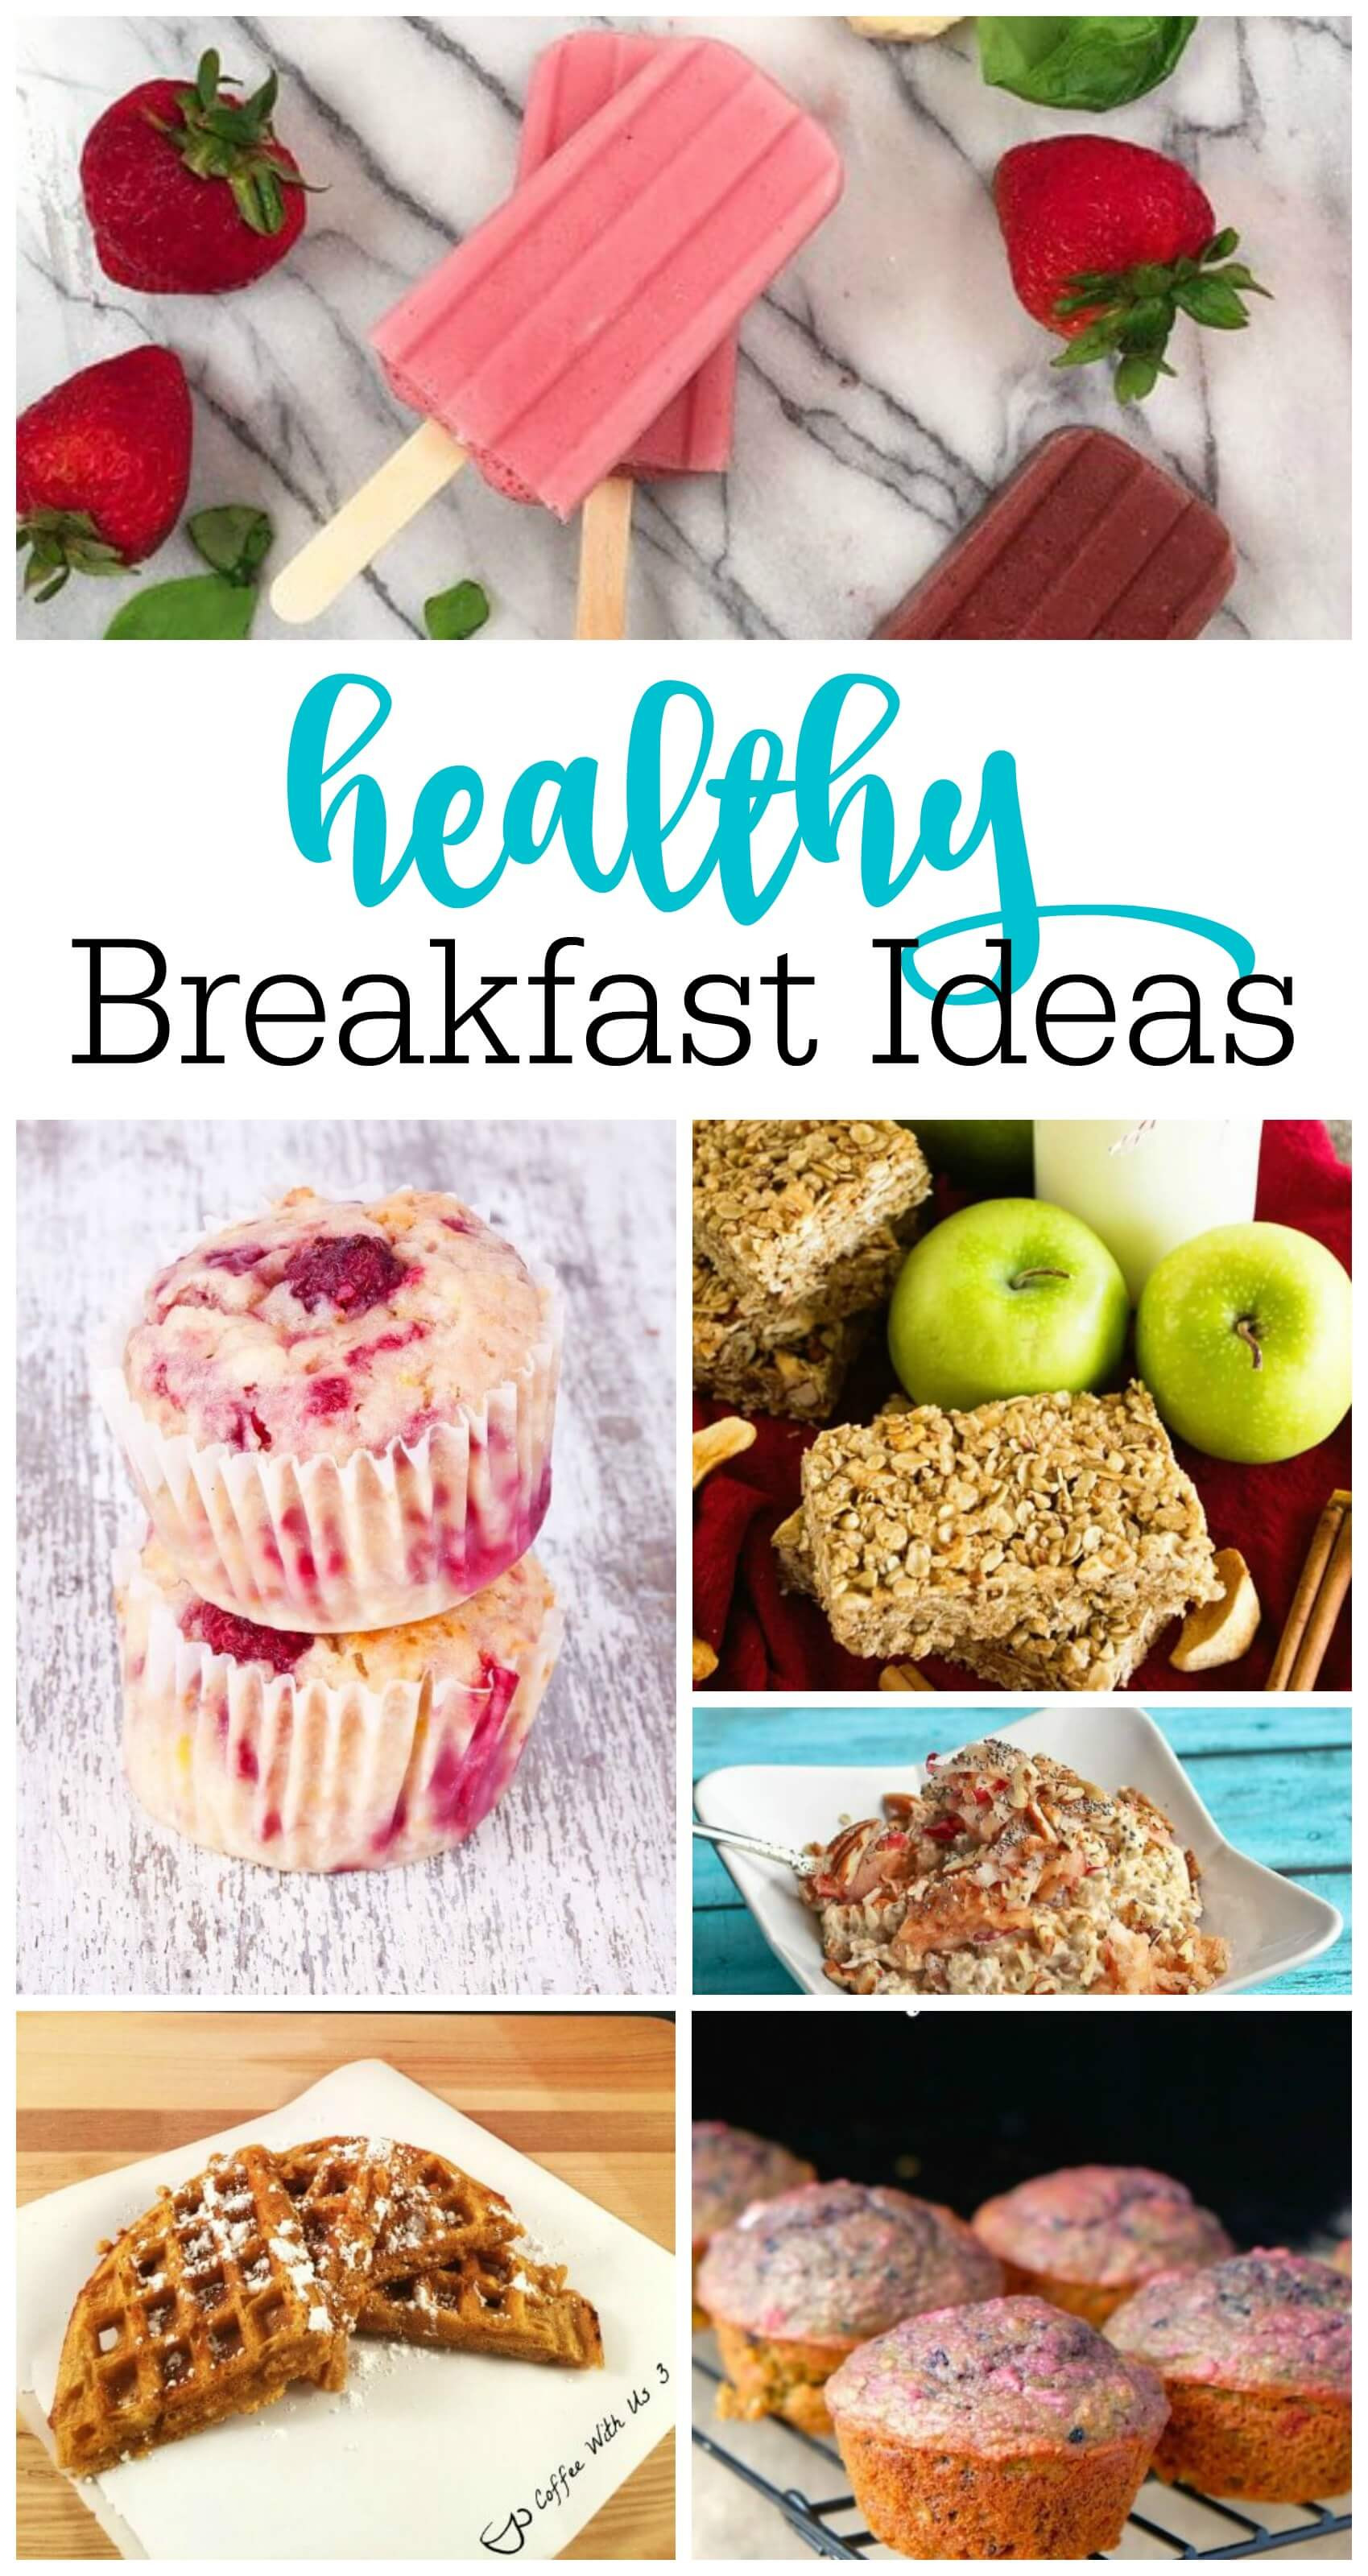 Good Healthy Breakfast Ideas  Healthy Breakfast Ideas for Busy Mornings